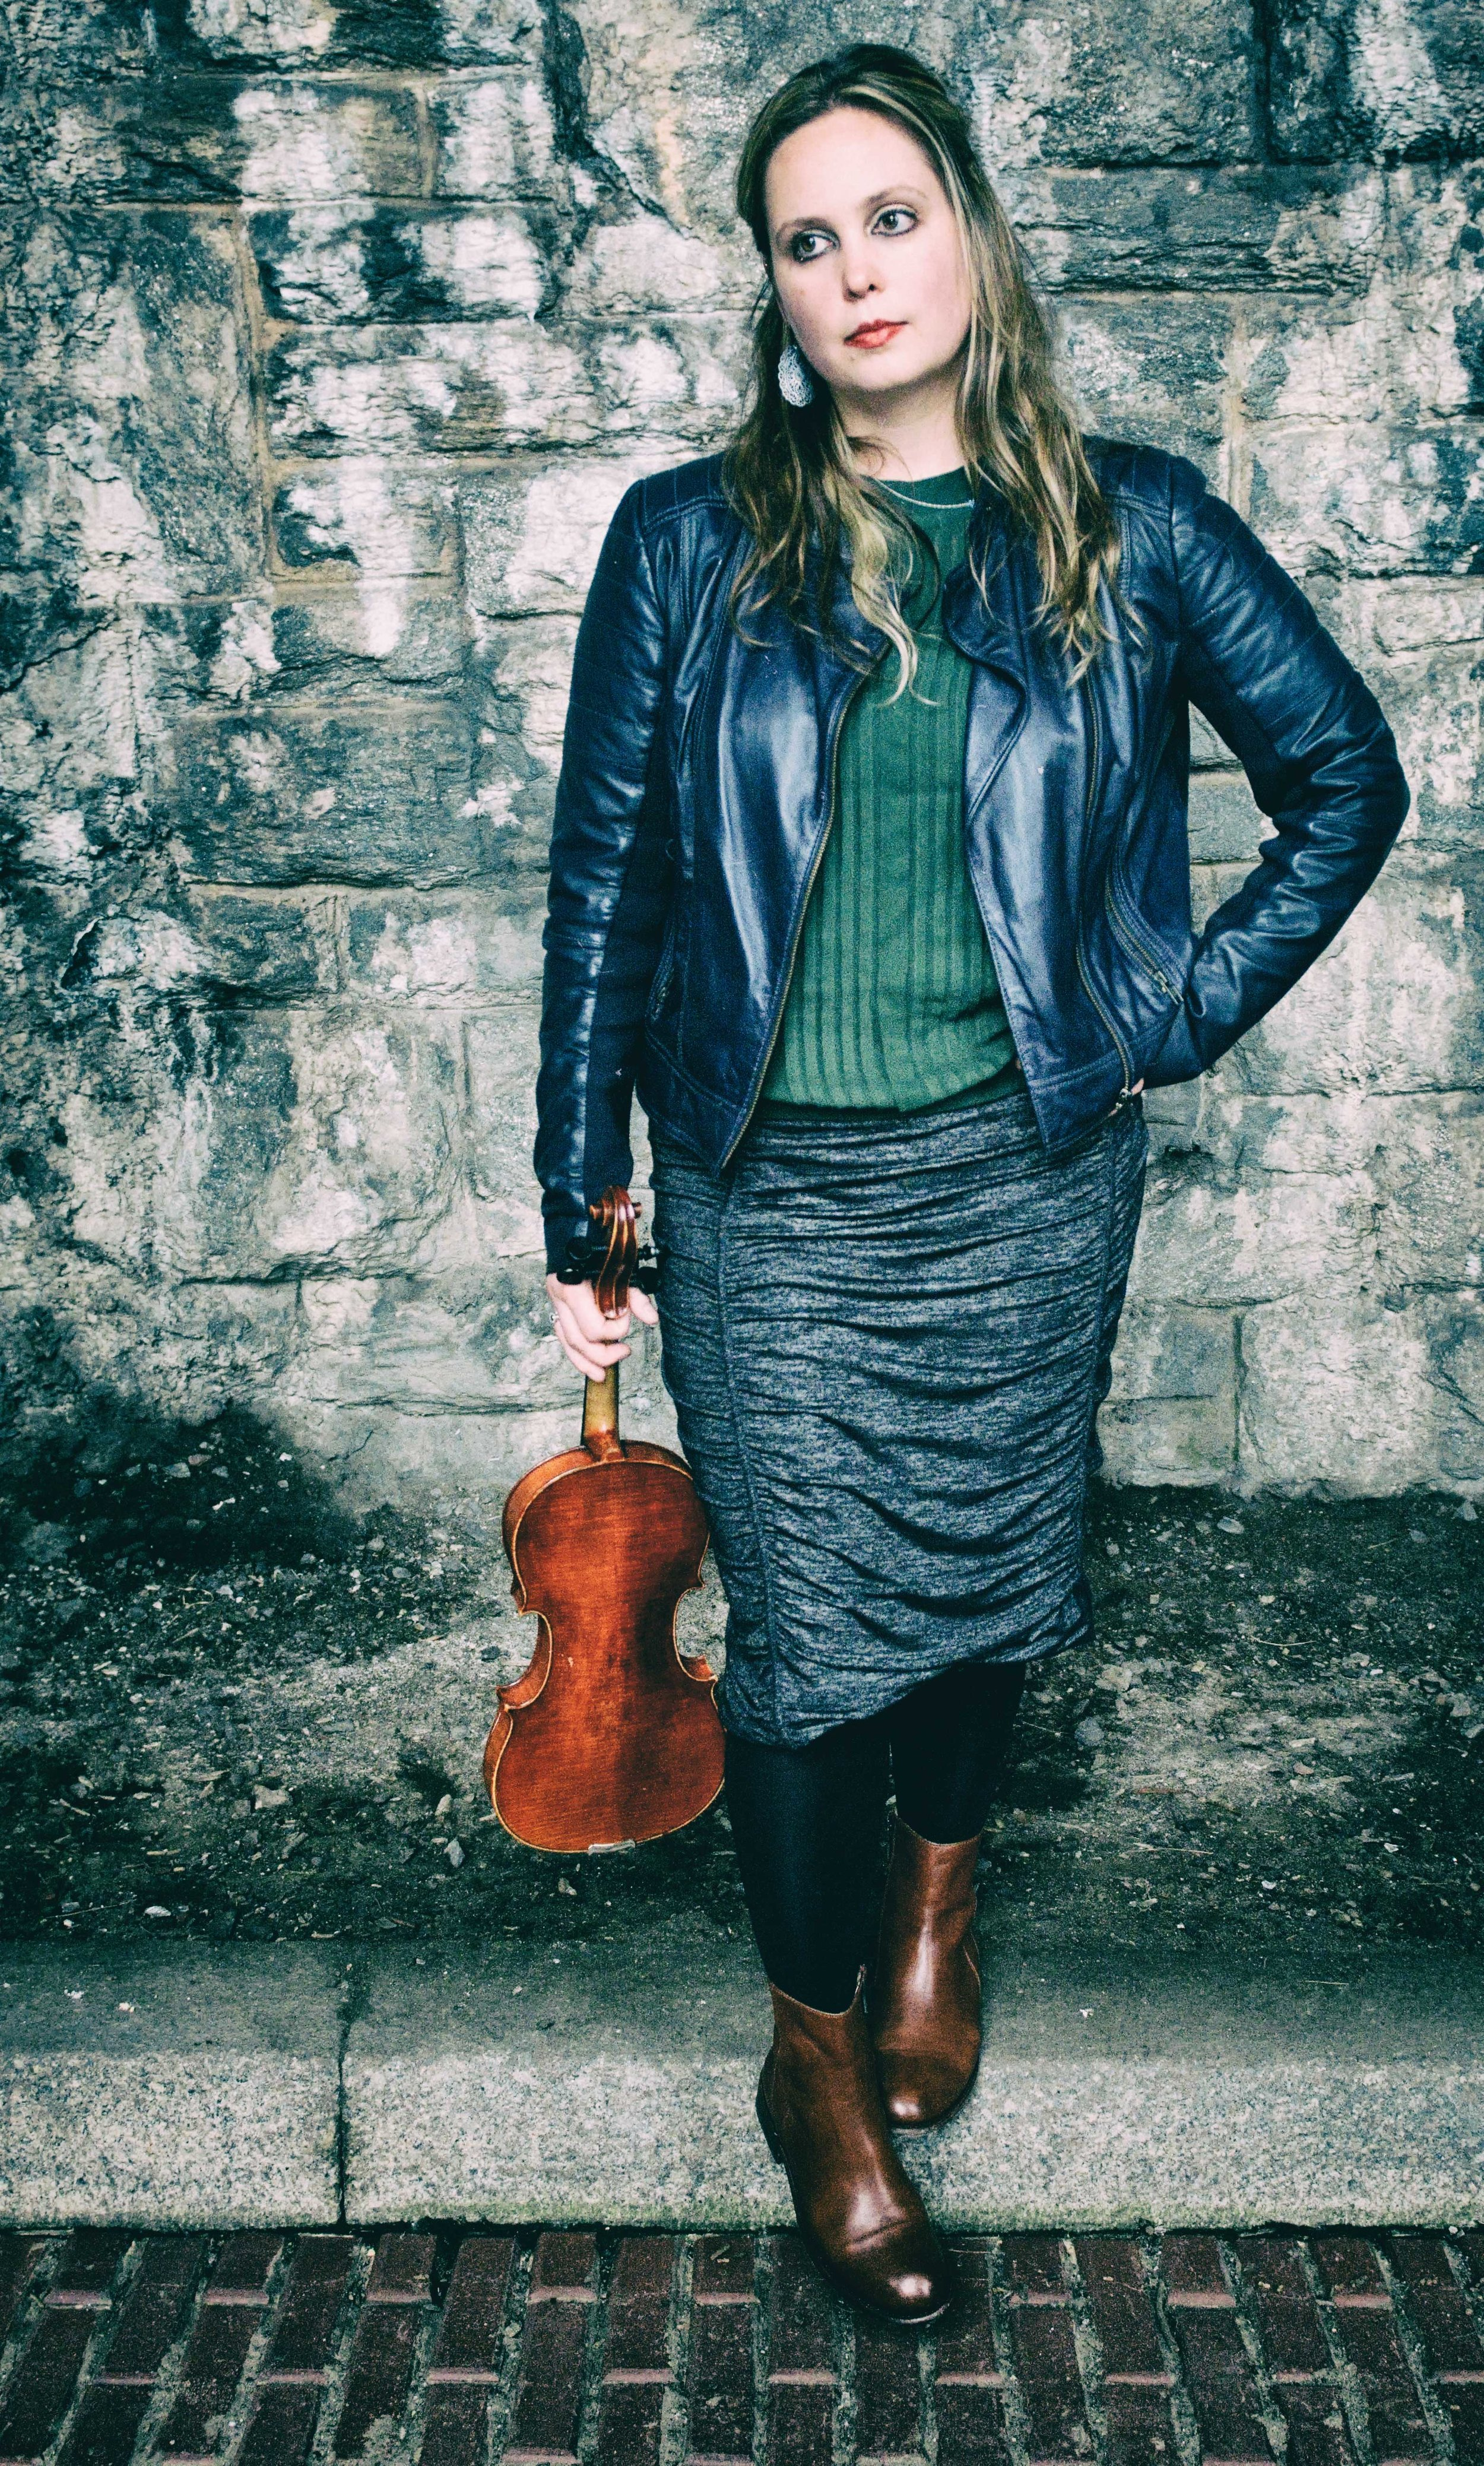 Emily Ondracek-Peterson, violin